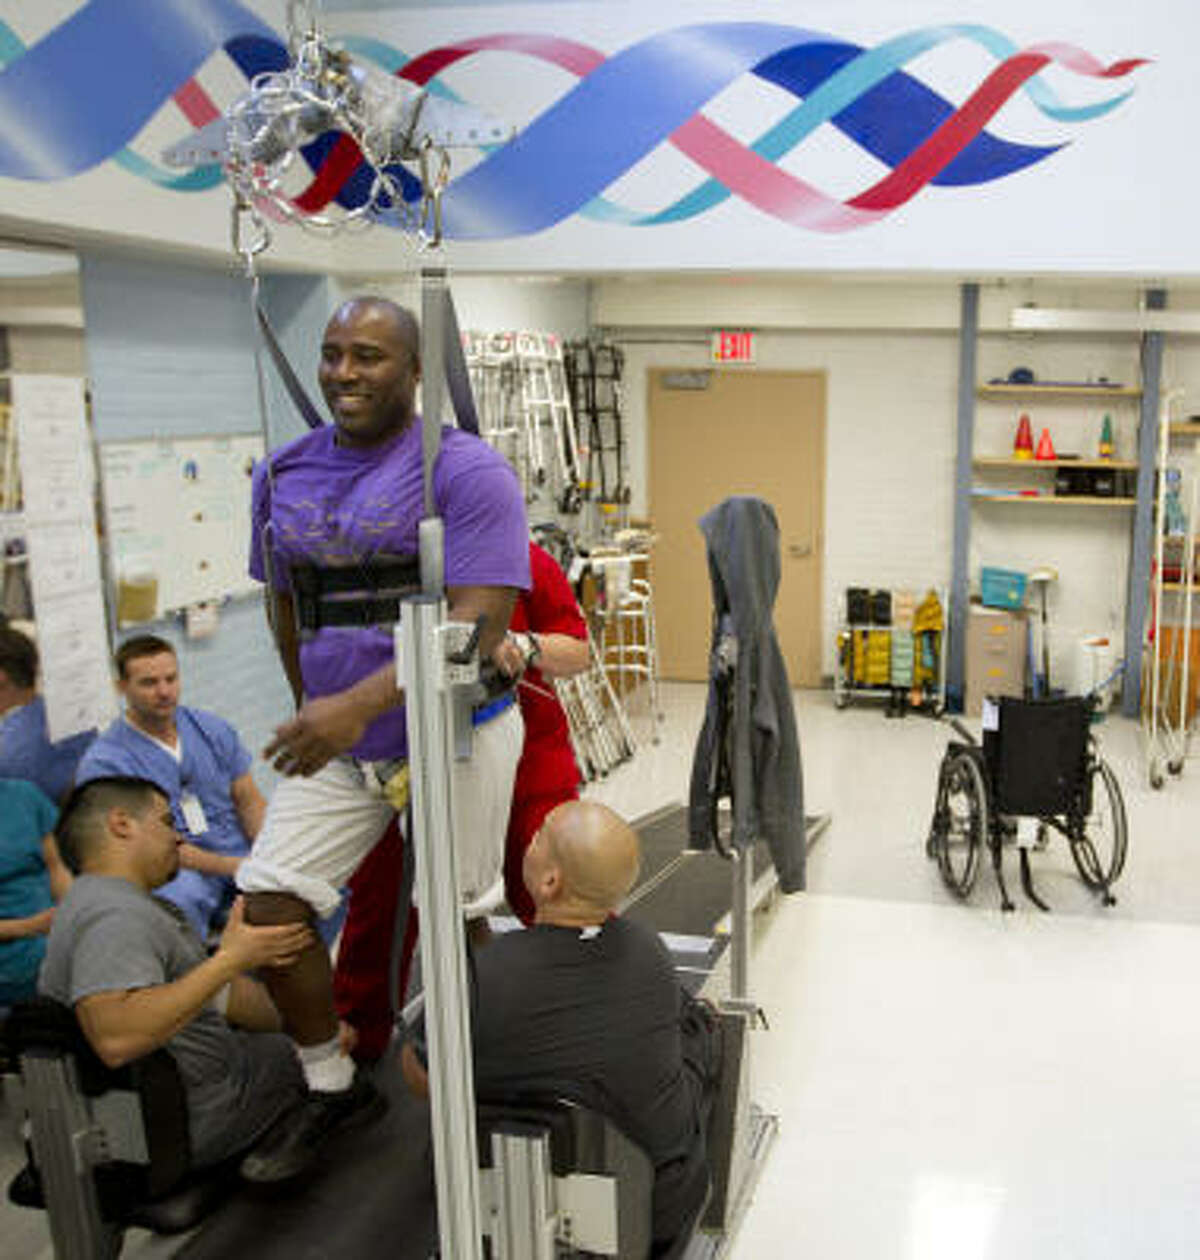 Patient Earl Franklin works with rehabilitation staff on a Therastride machine Thursday at The Institute for Rehabilitation and Research Memorial Hermann in Houston, where Rep. Gabrielle Giffords is to begin the next phase of her recovery.